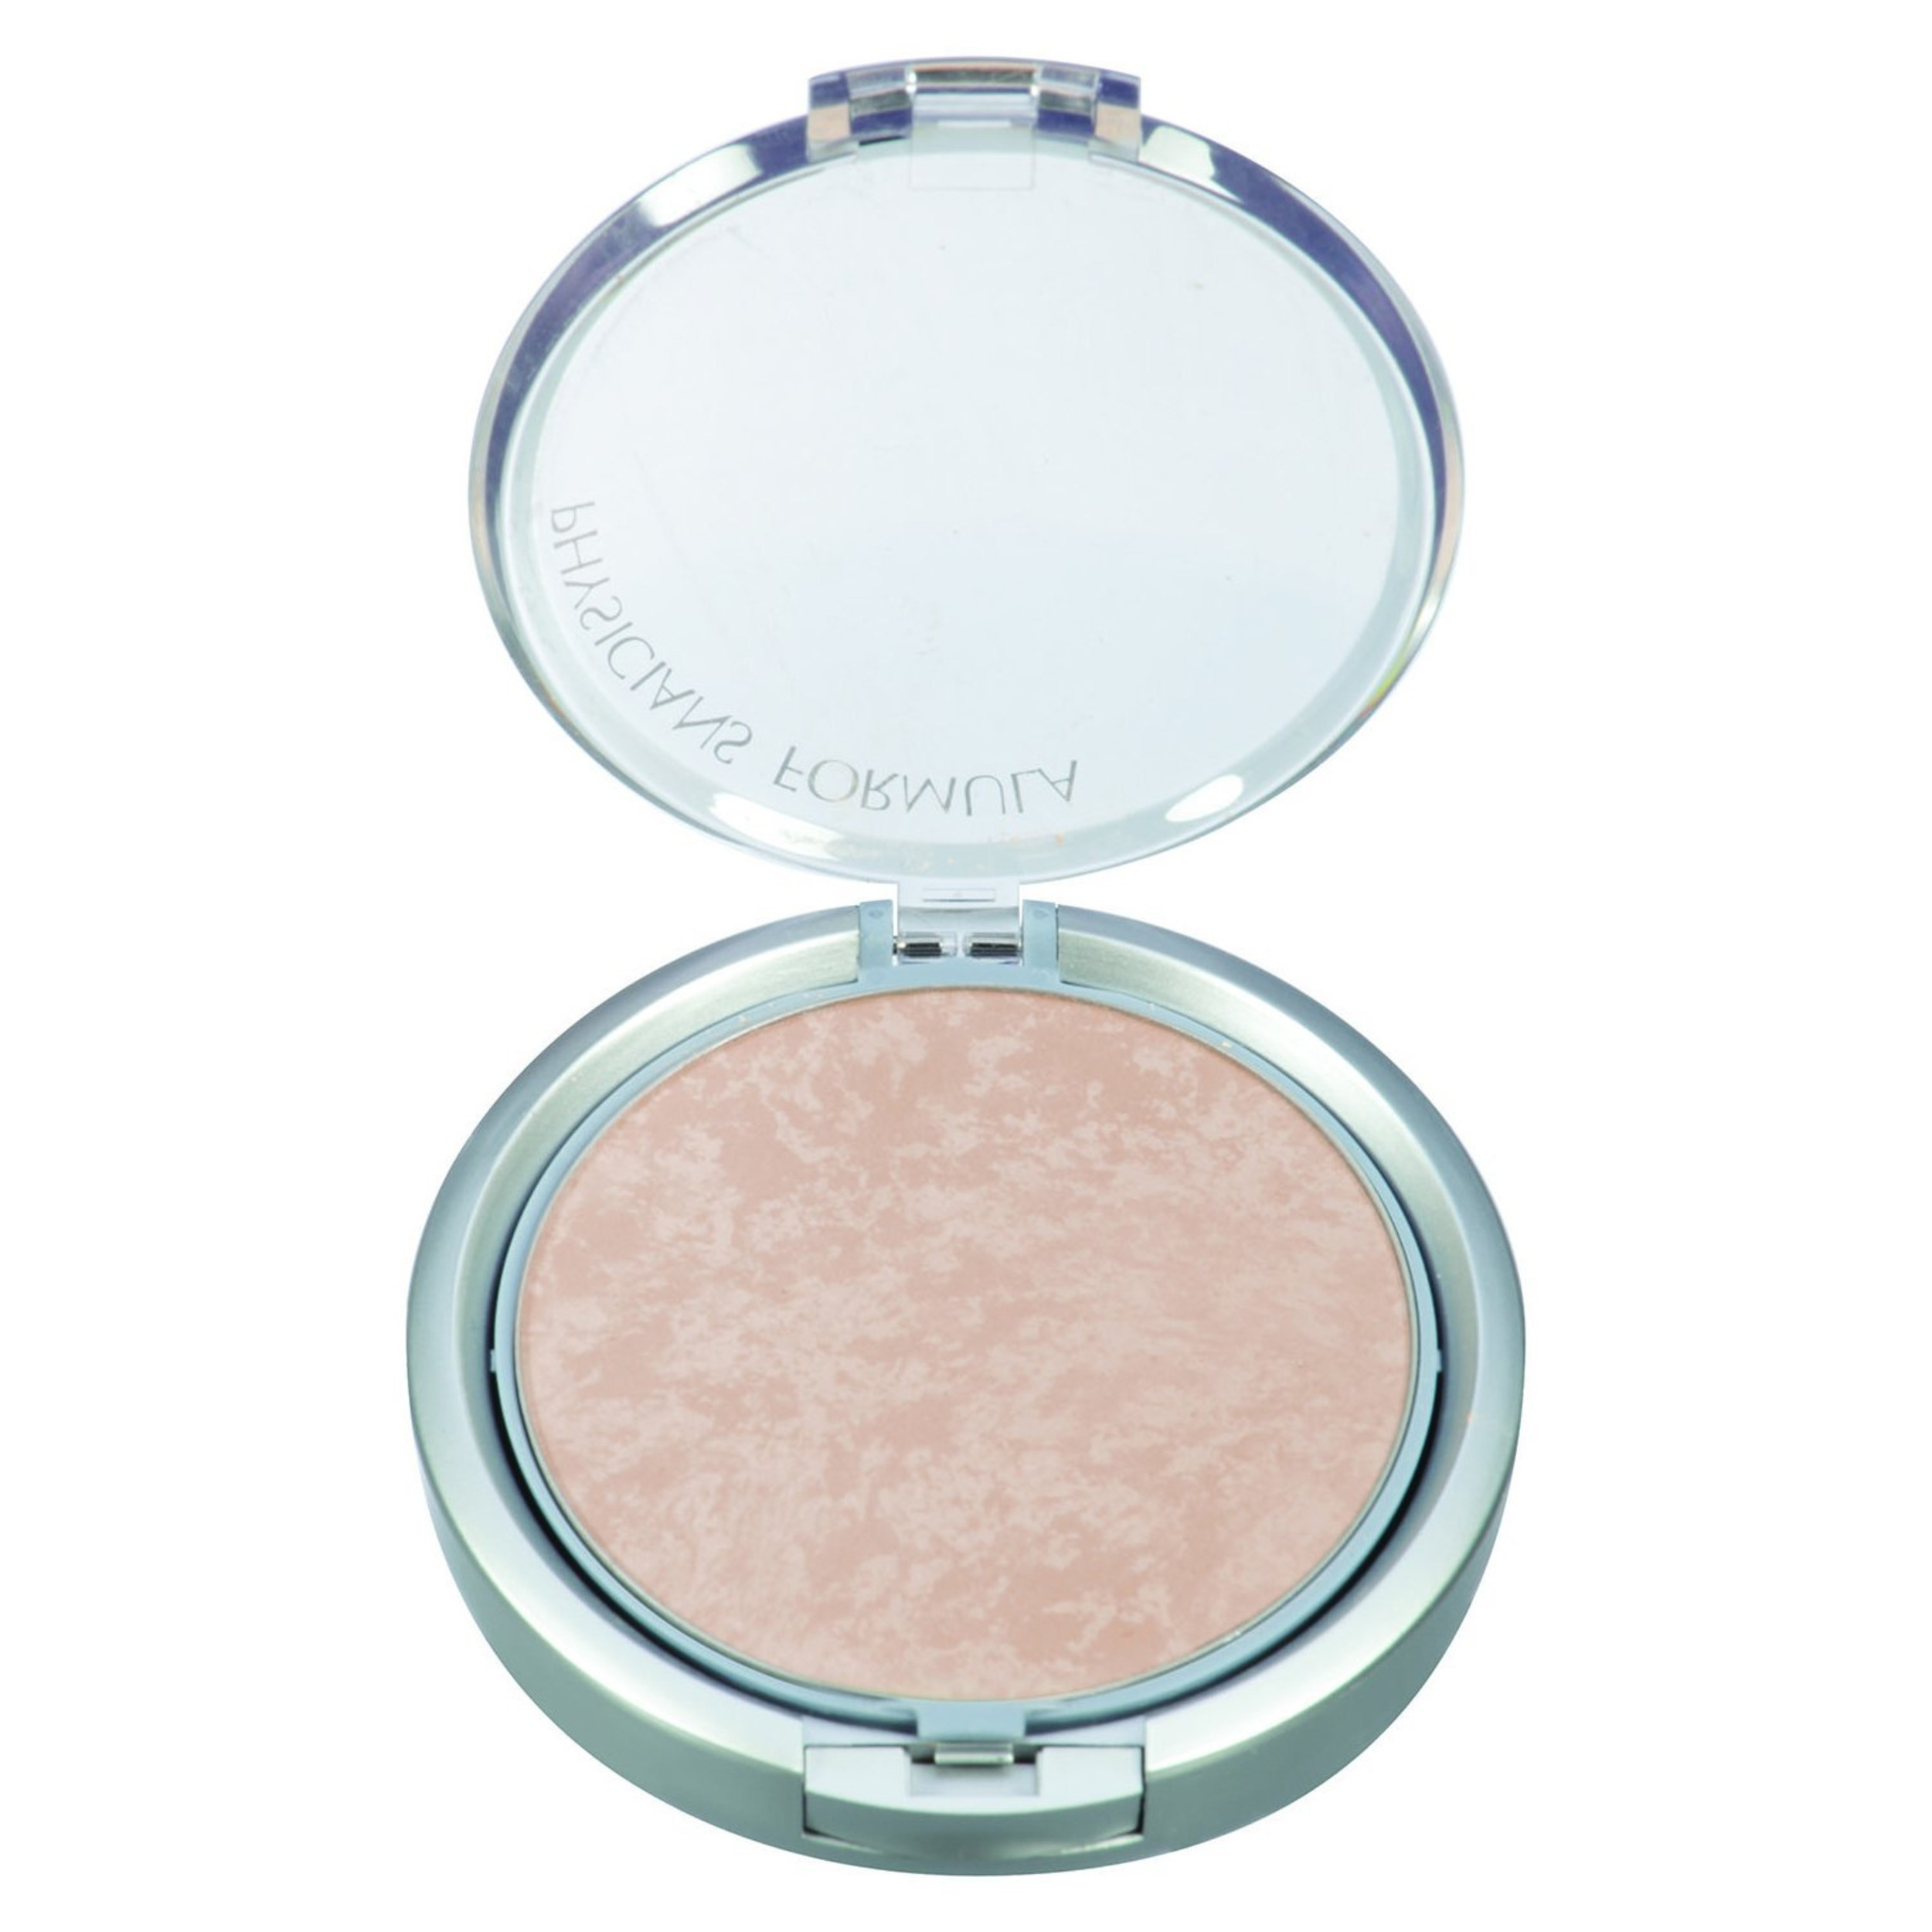 Physicians Formula Mineral Wear® Talc-Free Mineral Pressed Face Powder, Buff Beige